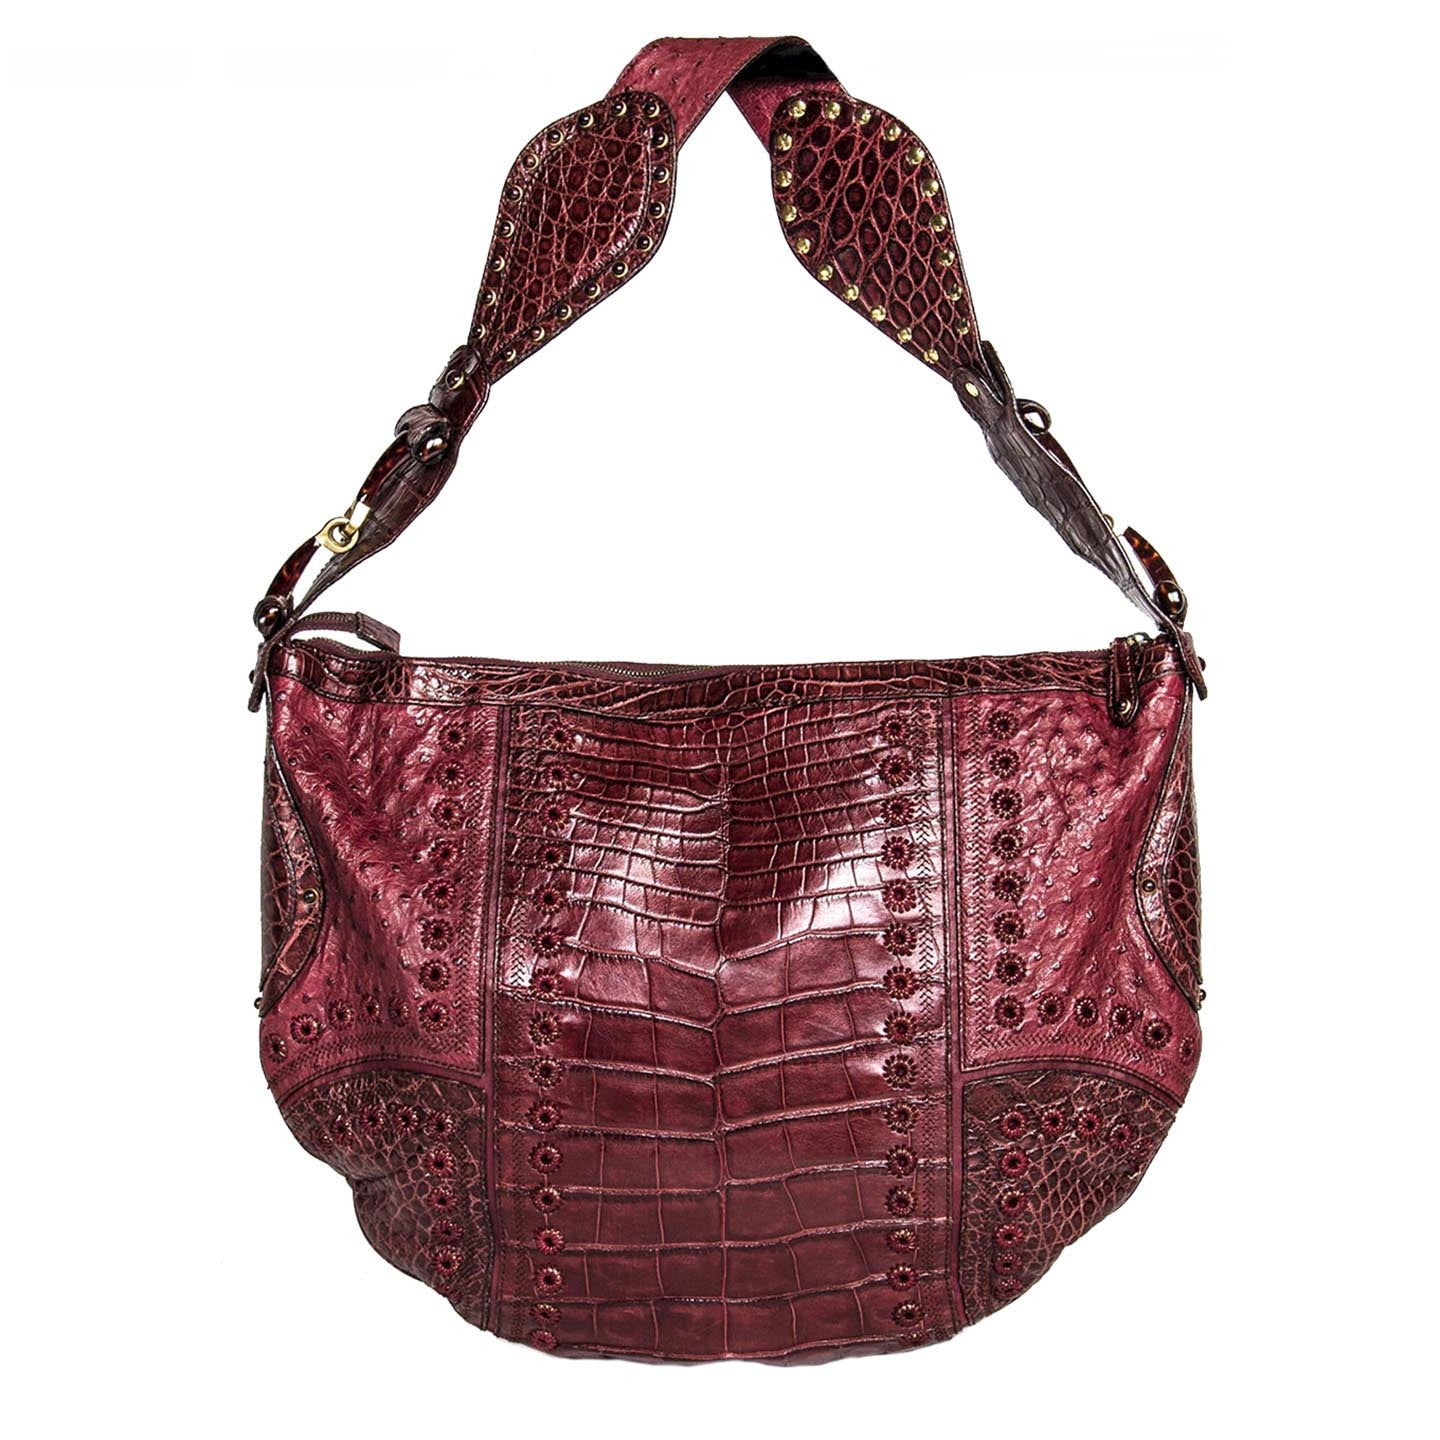 Find an authentic preowned Gucci Burgundy Crocodile & Lizard Large Bag at BunnyJack, where a portion of every sale goes to charity.